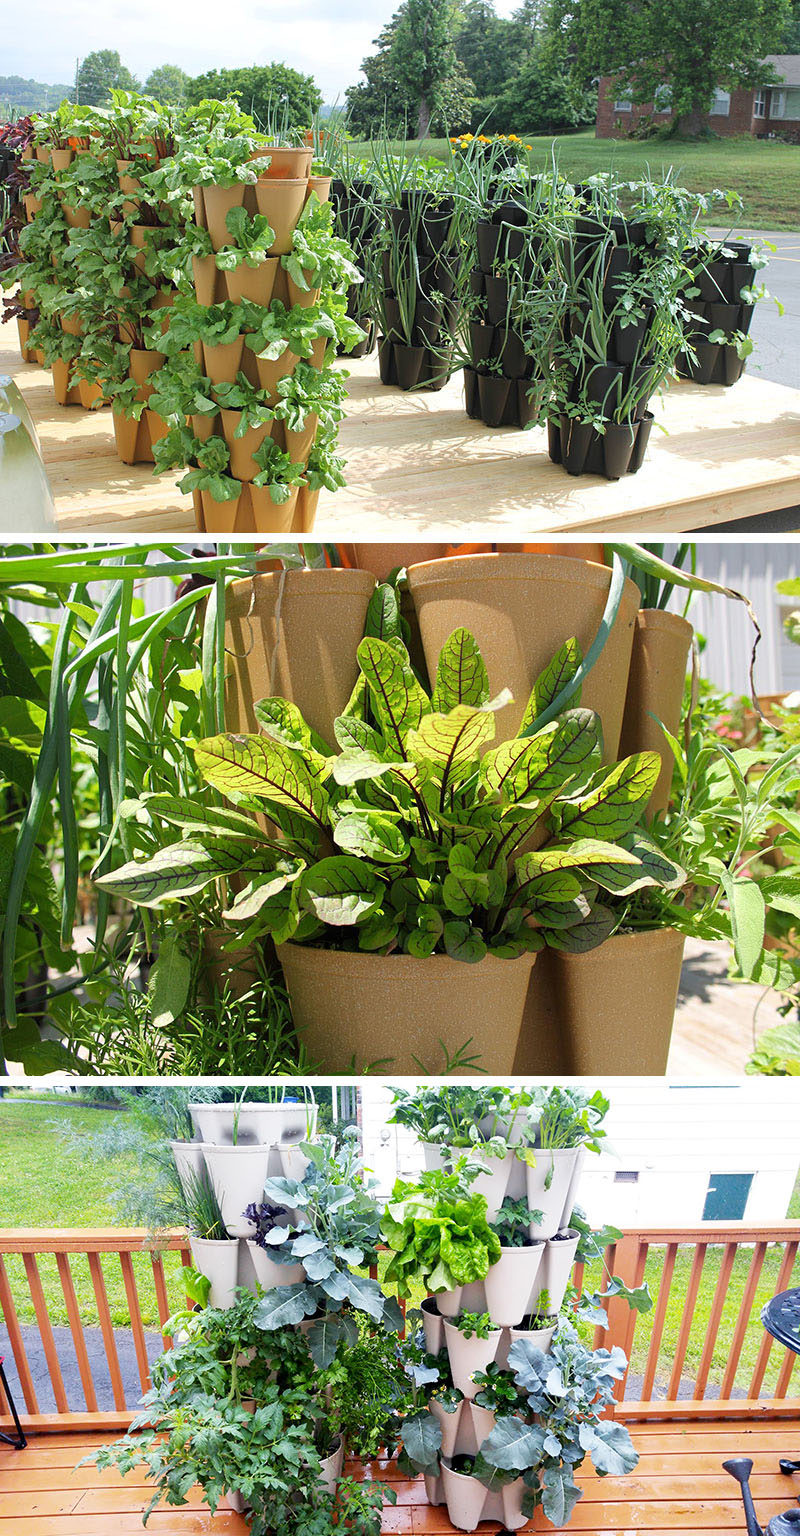 5 Vertical Vegetable Garden Ideas For Beginners / These Stackable Pots Make  Growing Your Own Vegetables